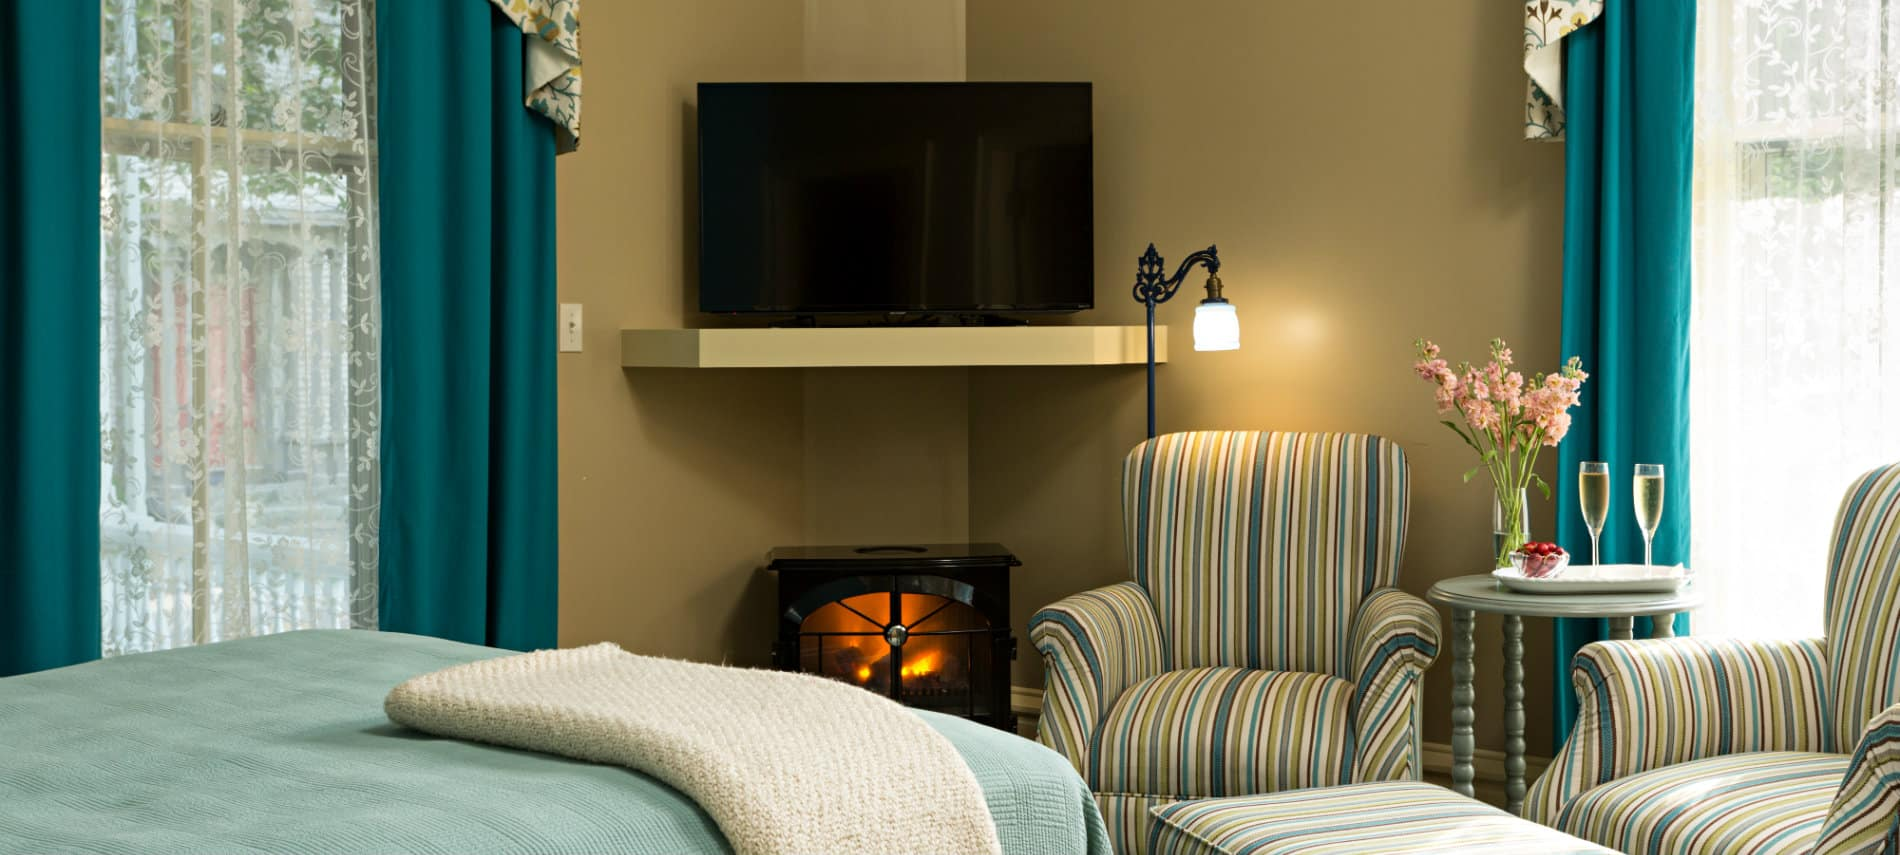 A room with beige walls and soothing blue and green accents on the bedding and chair fabric with a small fireplace and TV.